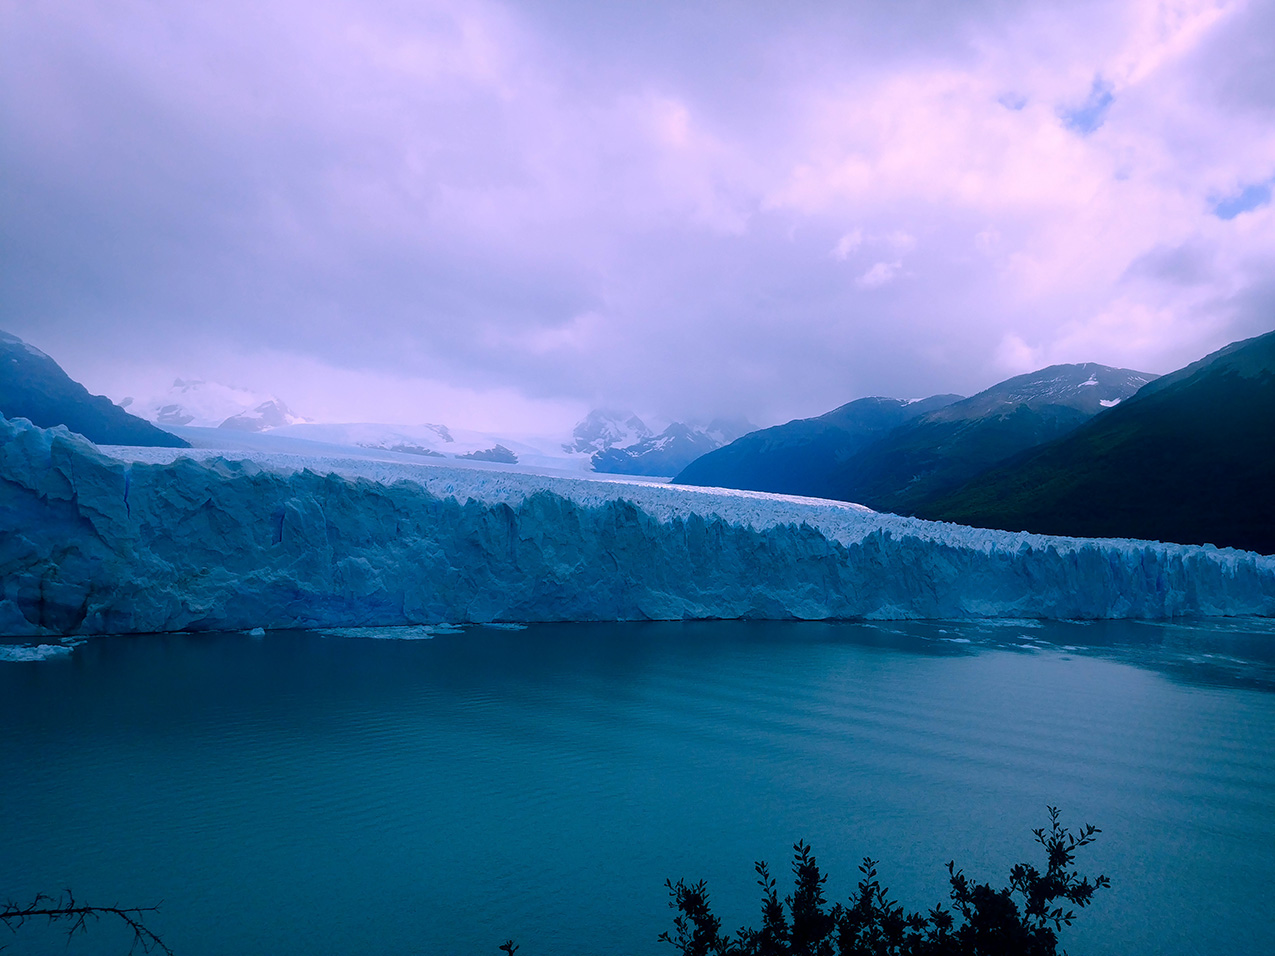 photo of Blue Glacier behind a lake, under a purple cloudy sky